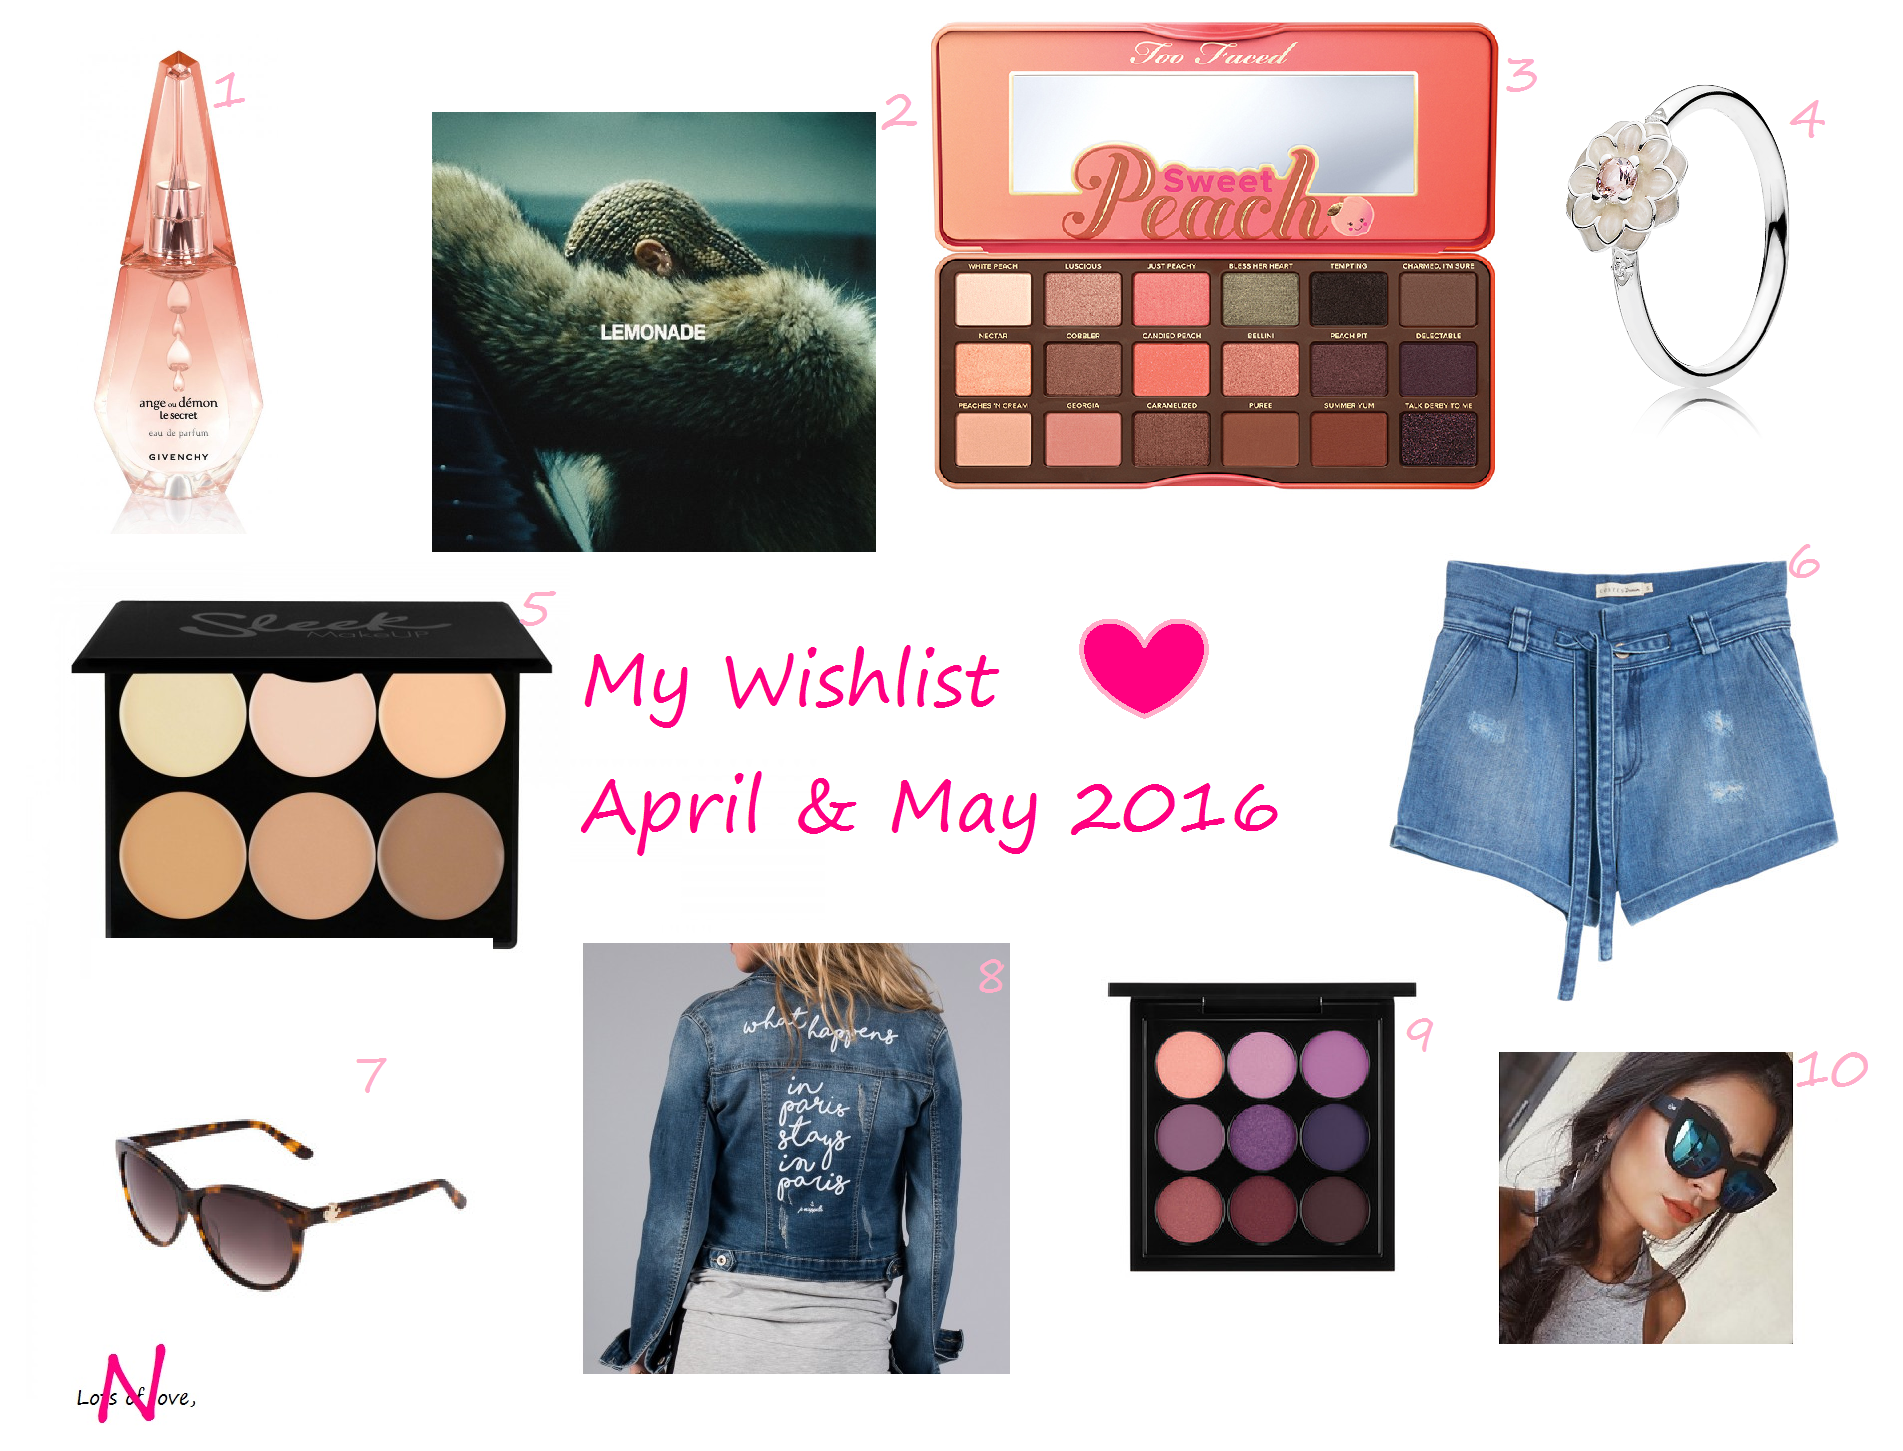 My Wishlist ♥ April & May 2016